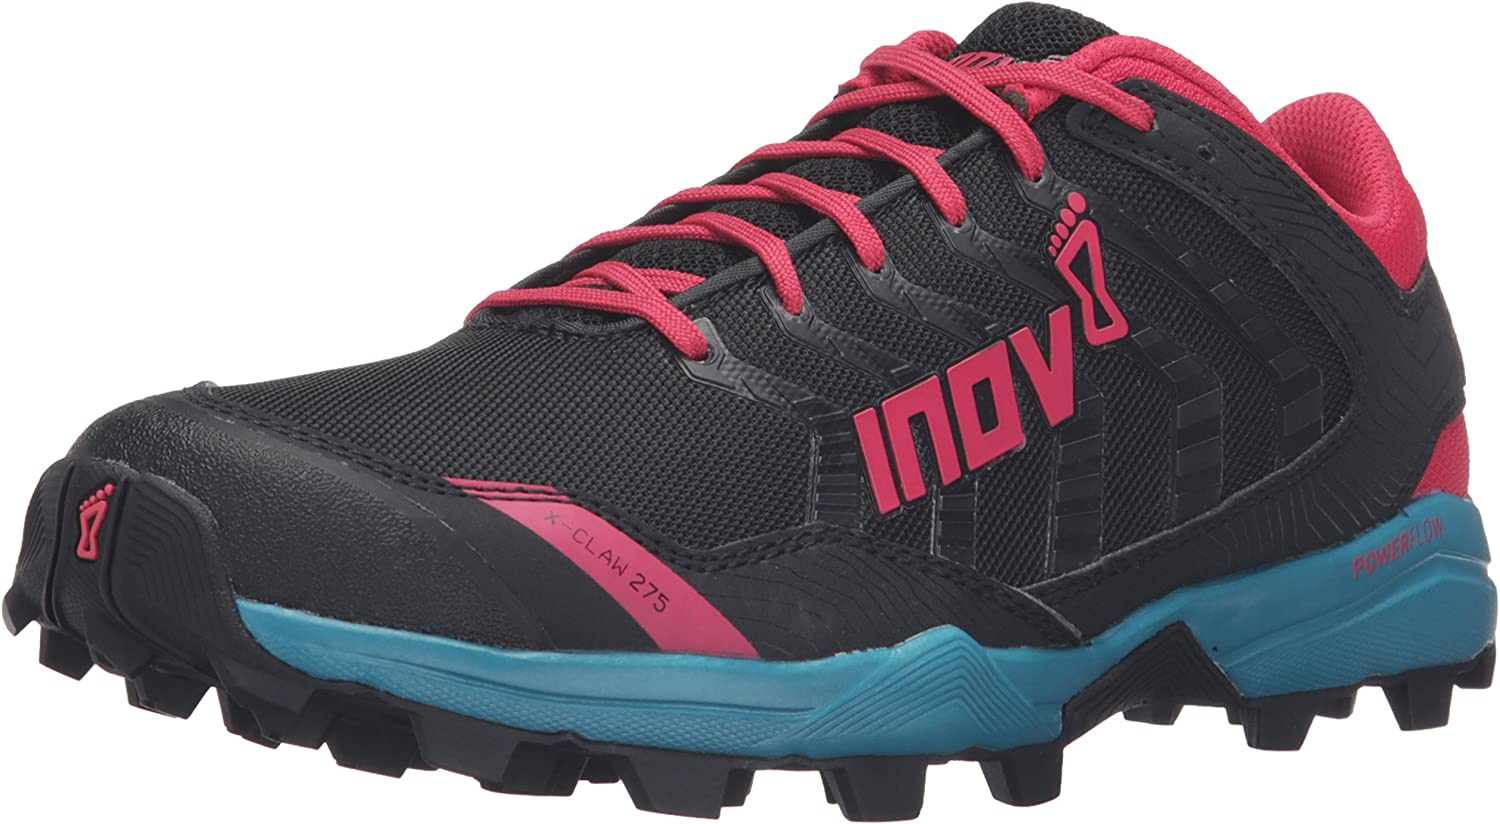 Inov-8 Women's X-Claw 275-W Trail Runner